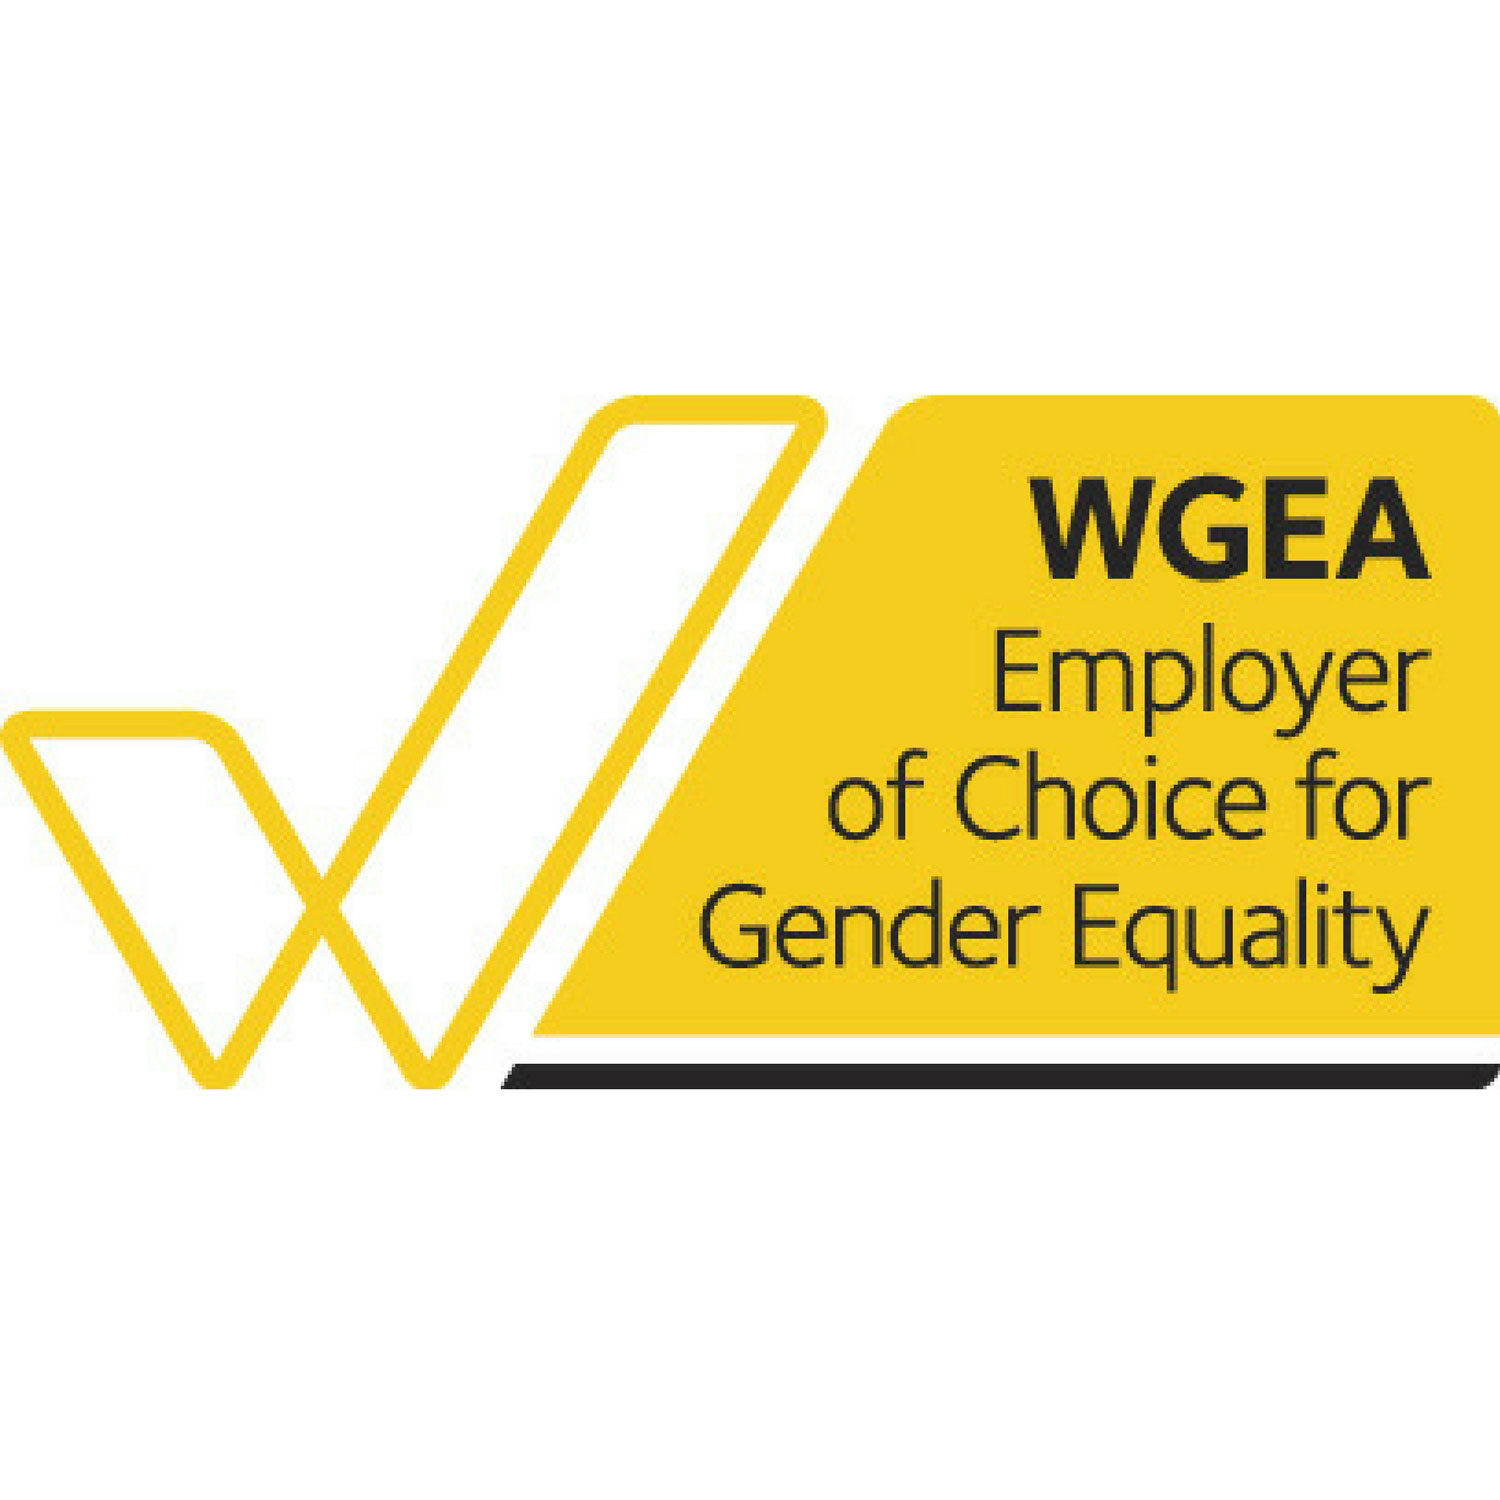 WGEA Employer of Choice for gender equity